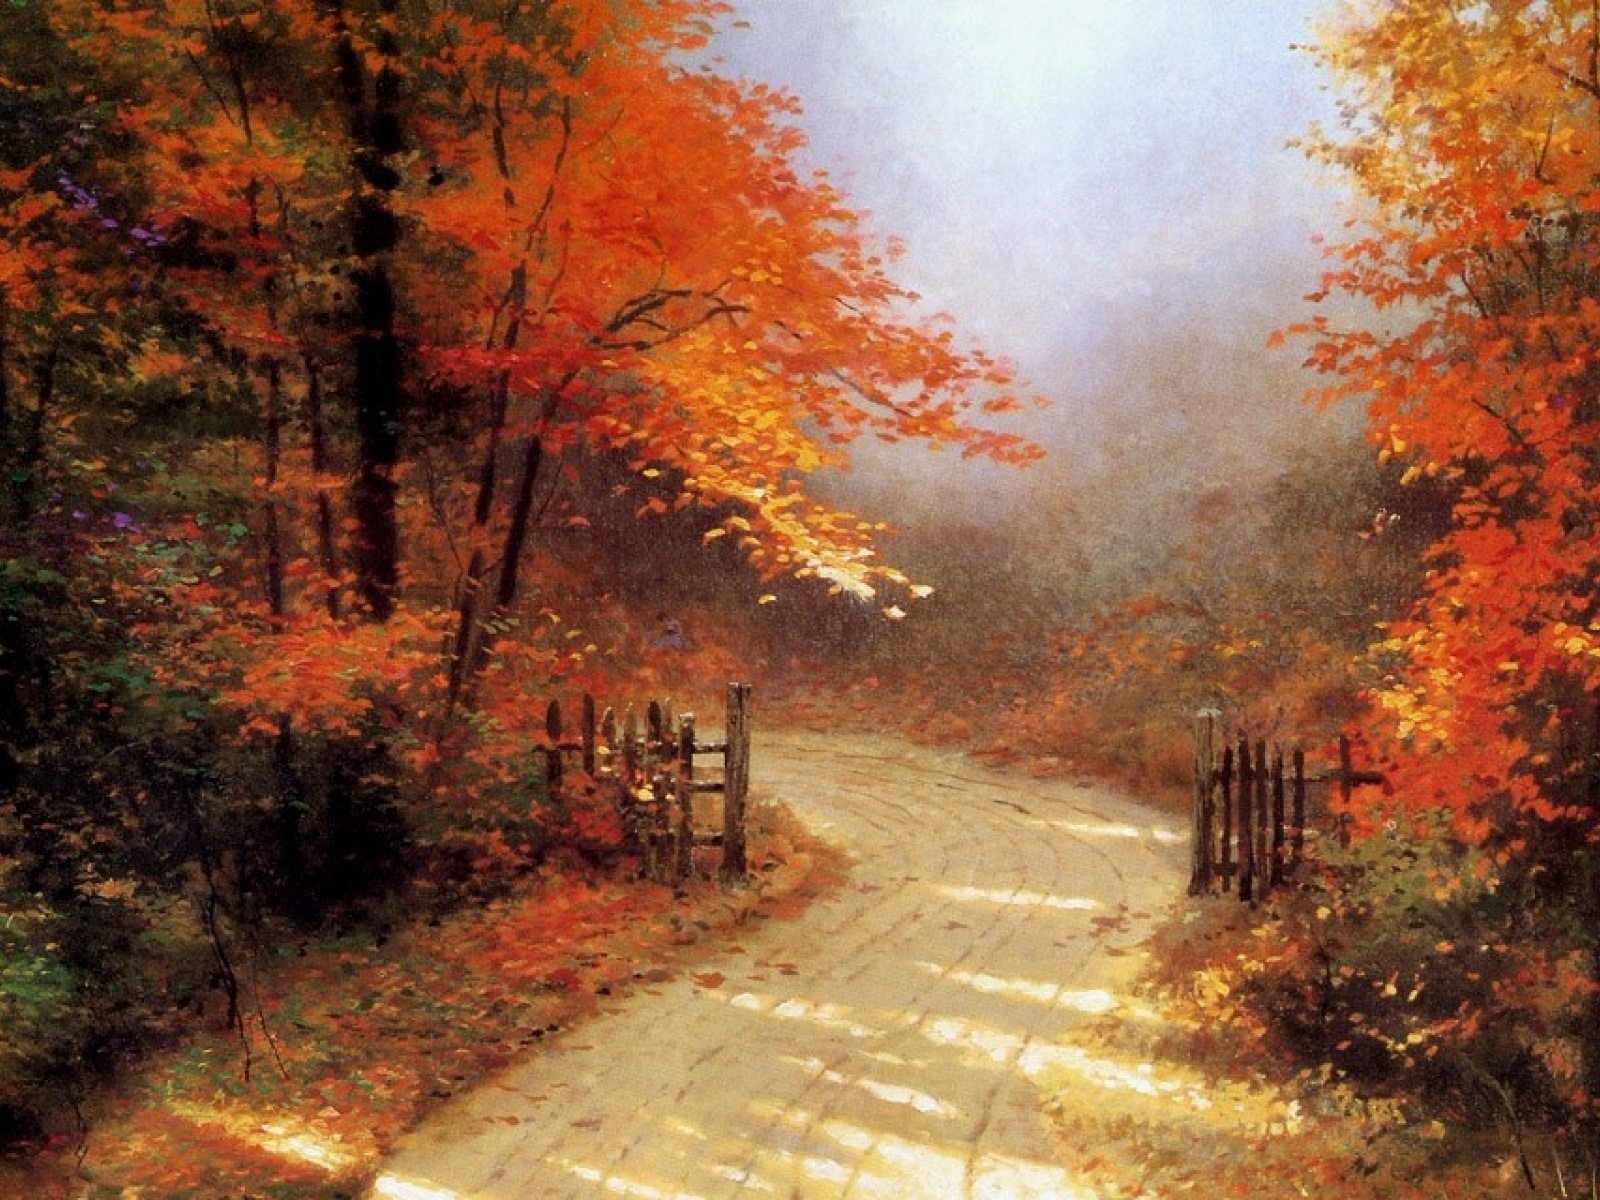 Thomas Kinkade Fall Desktop Wallpaper Famous Autumn Paintings Google Search Lighting